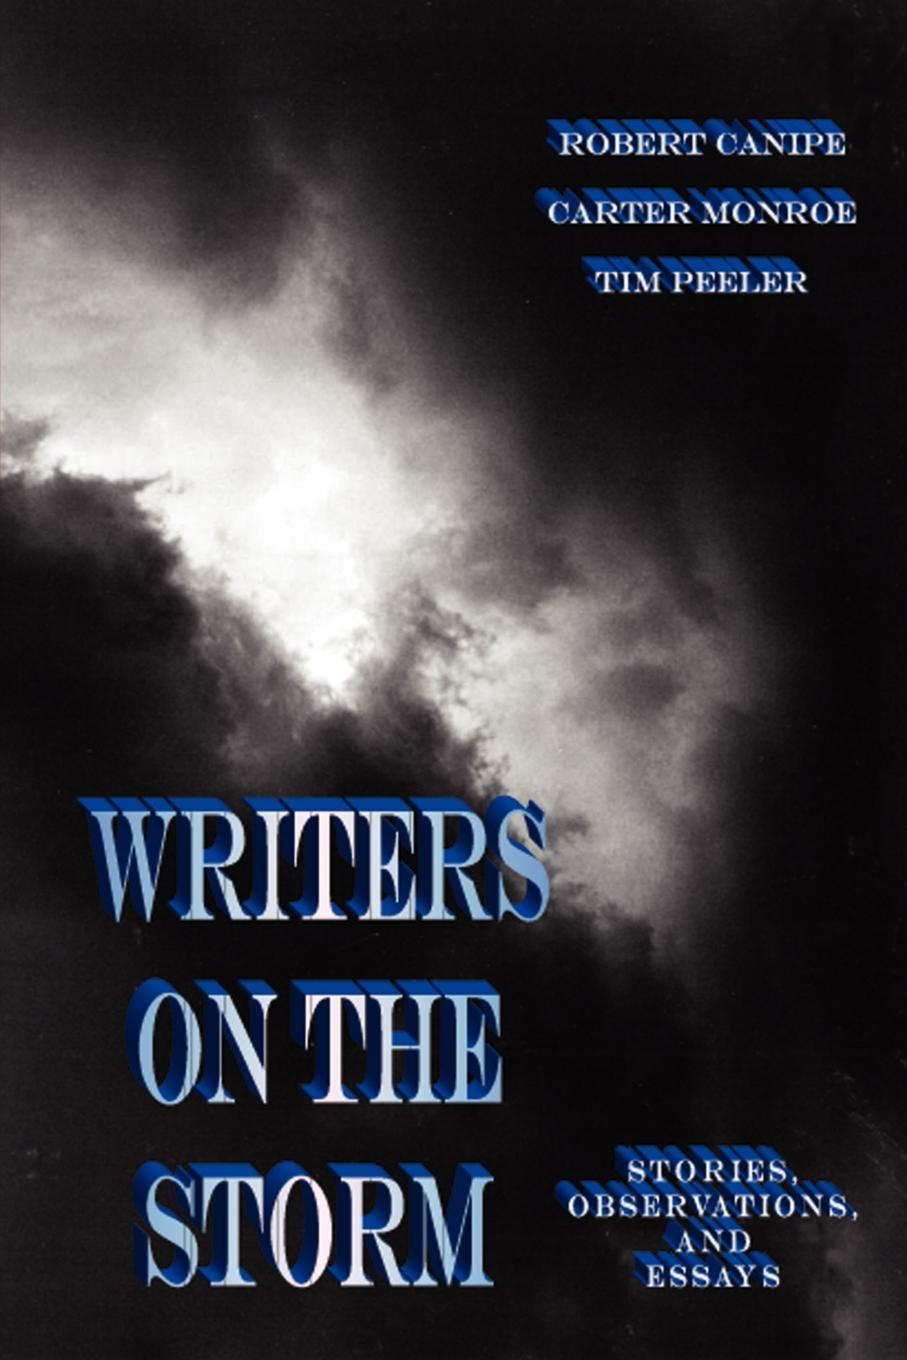 Tim Peeler, Carter Monroe, Robert Canipe Writers on the Storm. Stories, Observations, and Essays butterfly on the storm